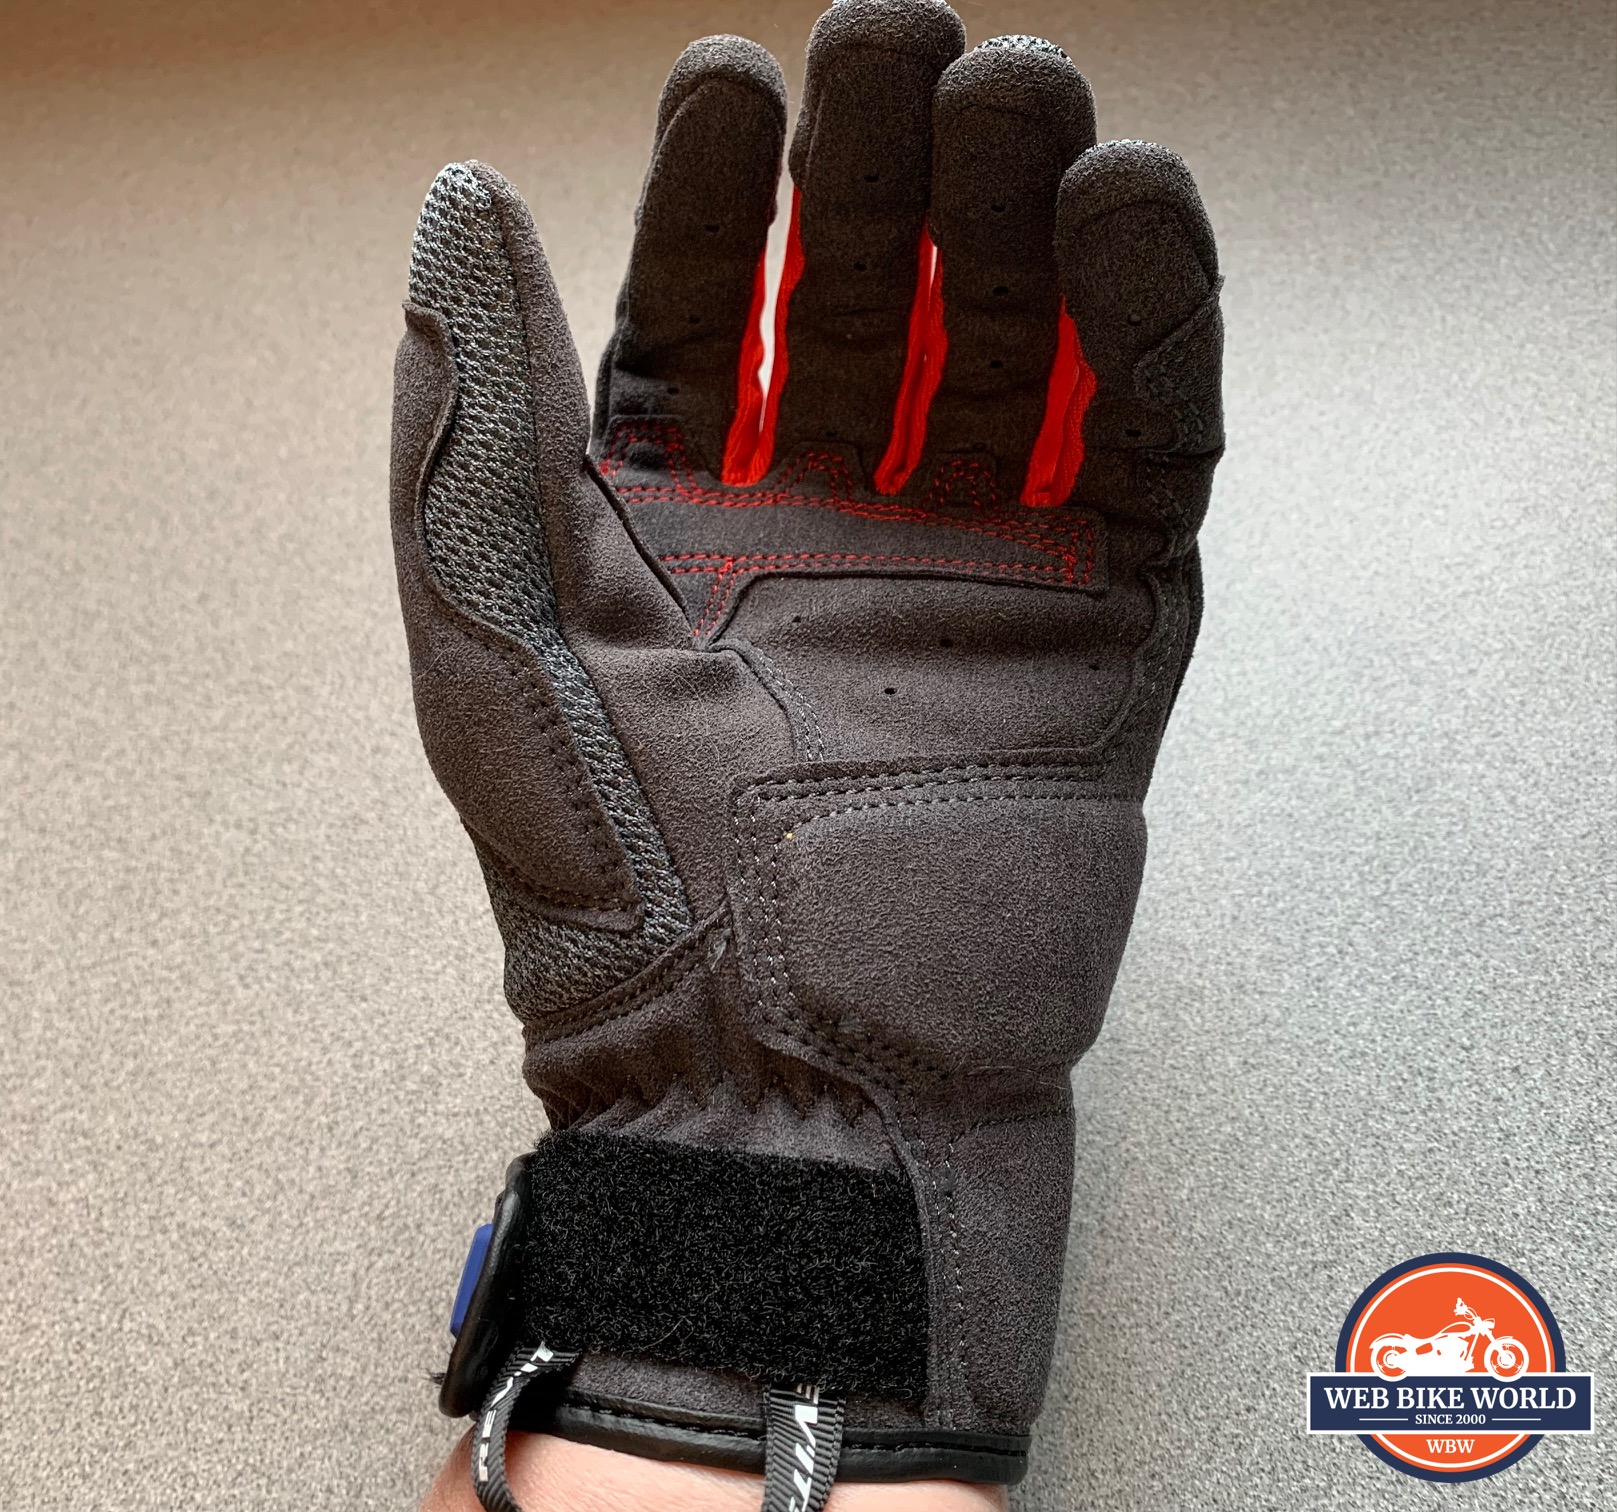 A view of the underside of the REV'IT! Volcano gloves